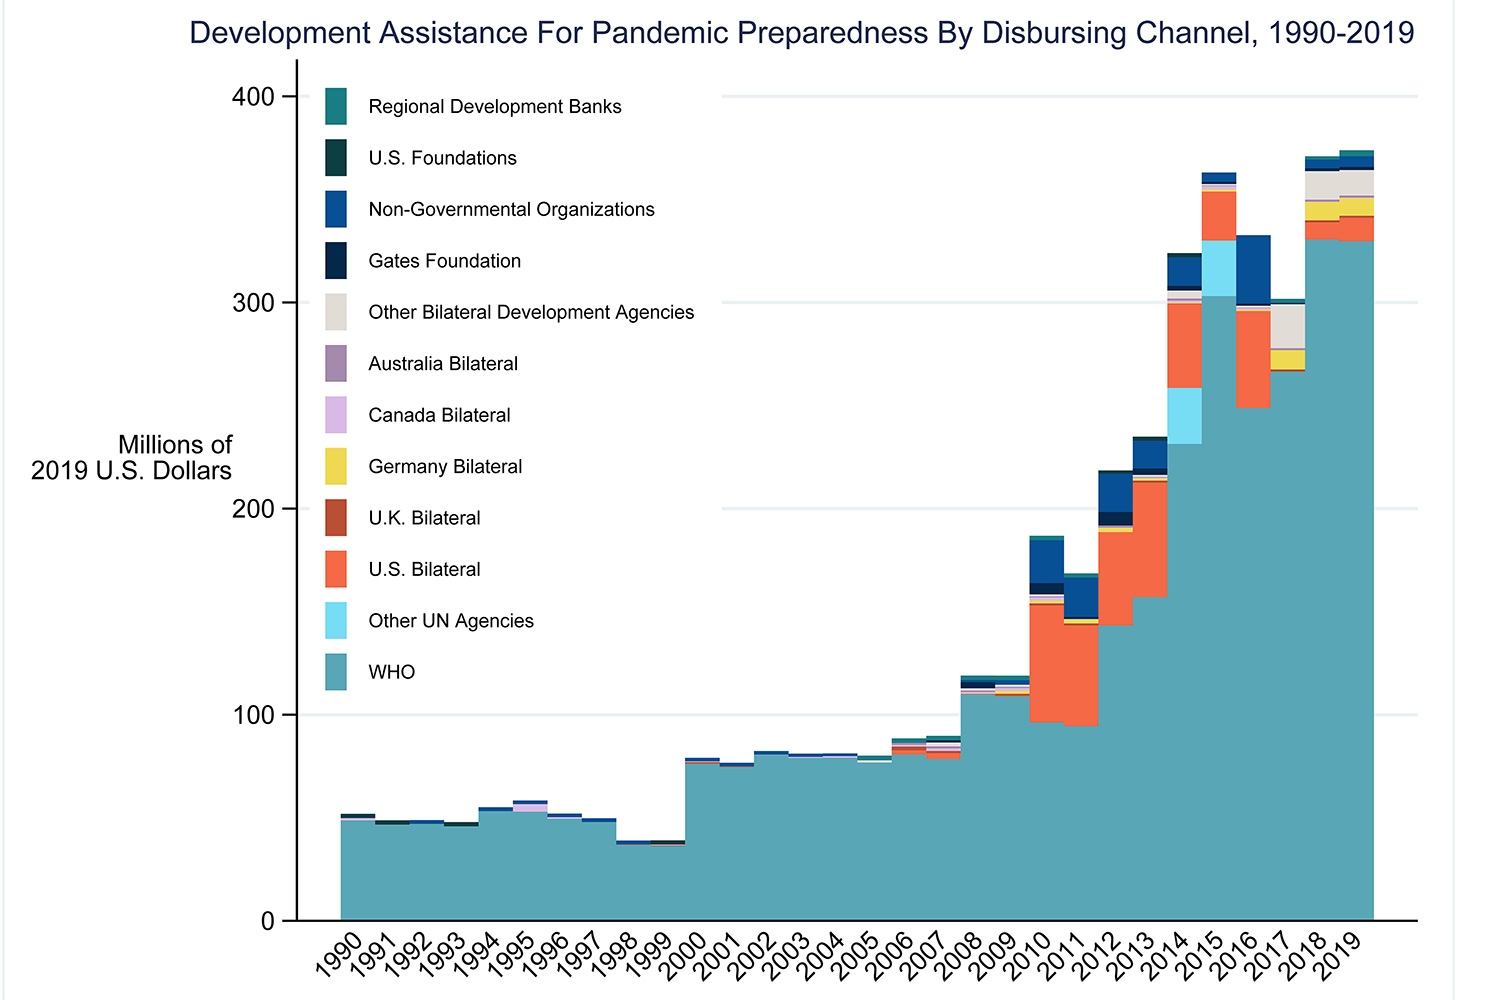 The bar chart shows sources of pandemic preparedness spending, organizations and countries